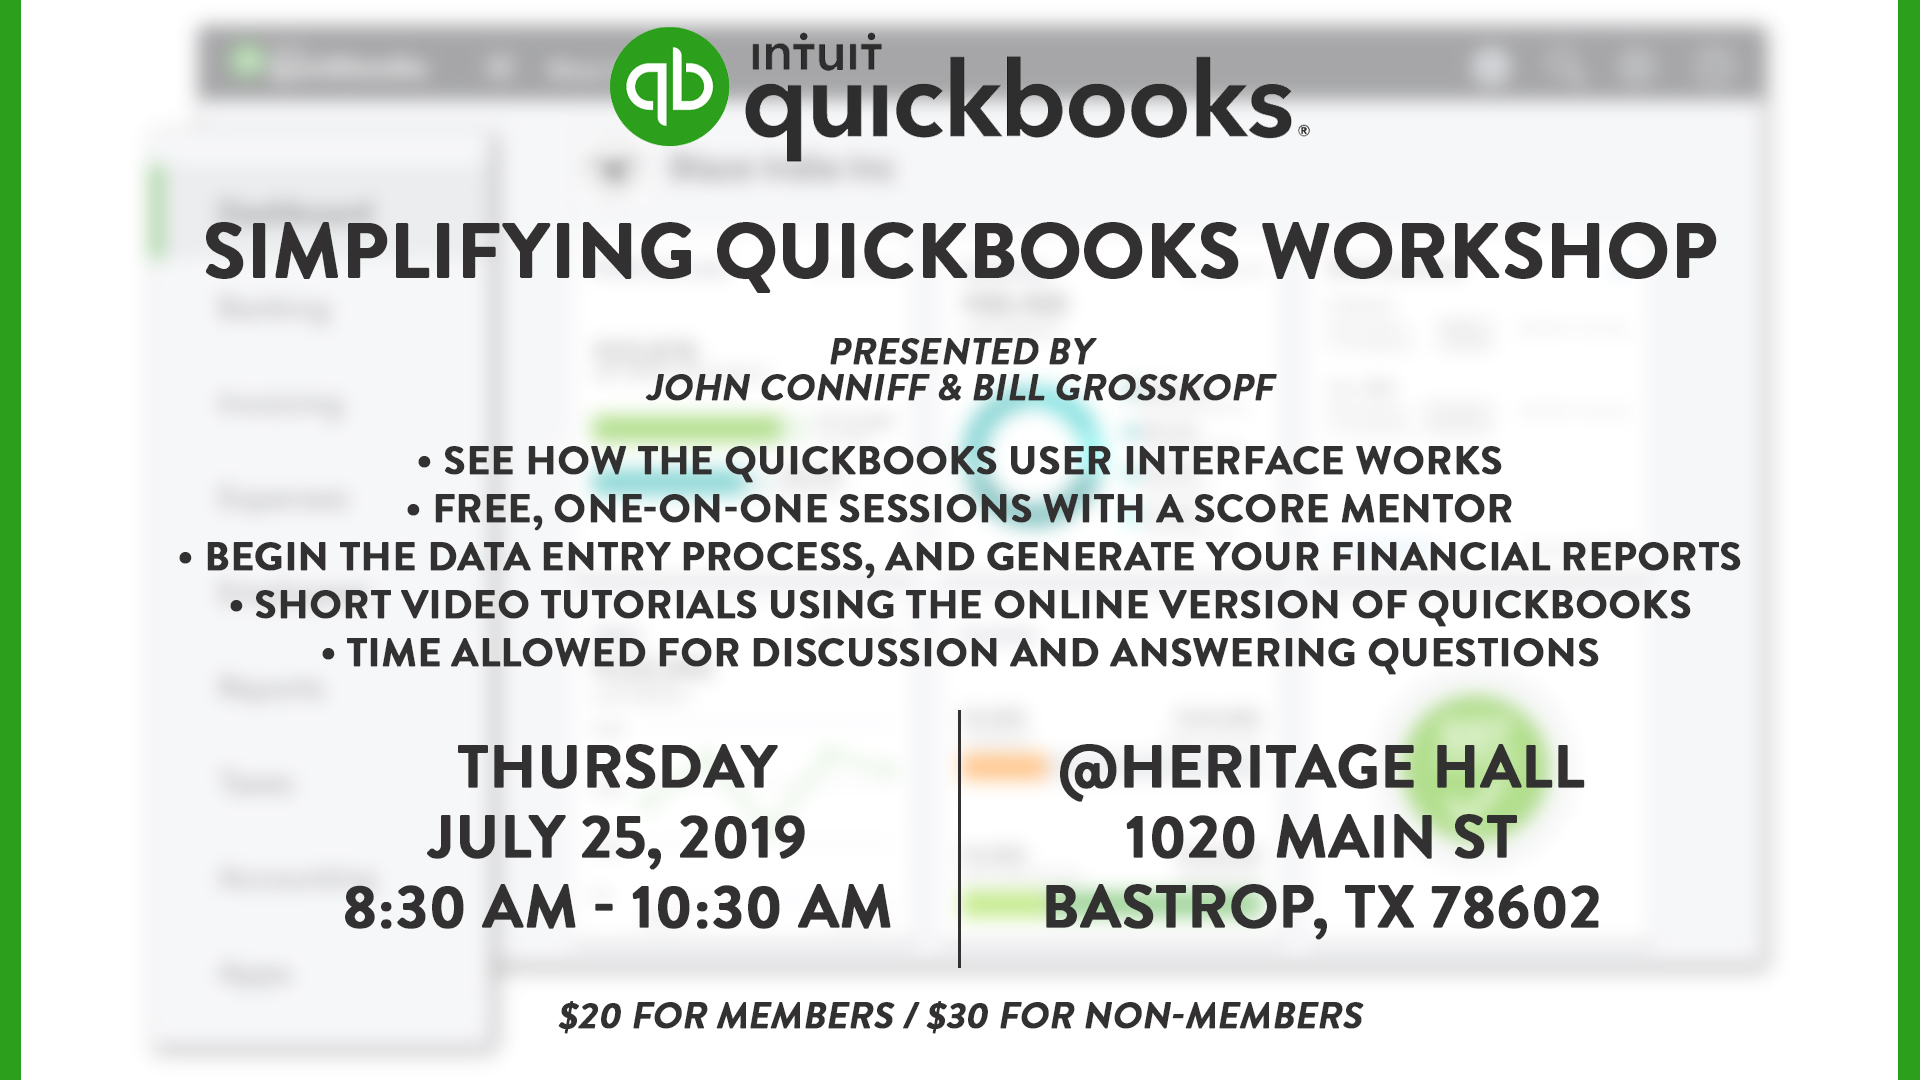 https://wordpressstorageaccount.blob.core.windows.net/wp-media/wp-content/uploads/sites/964/2019/06/Simplifying-Quickbooks.jpg